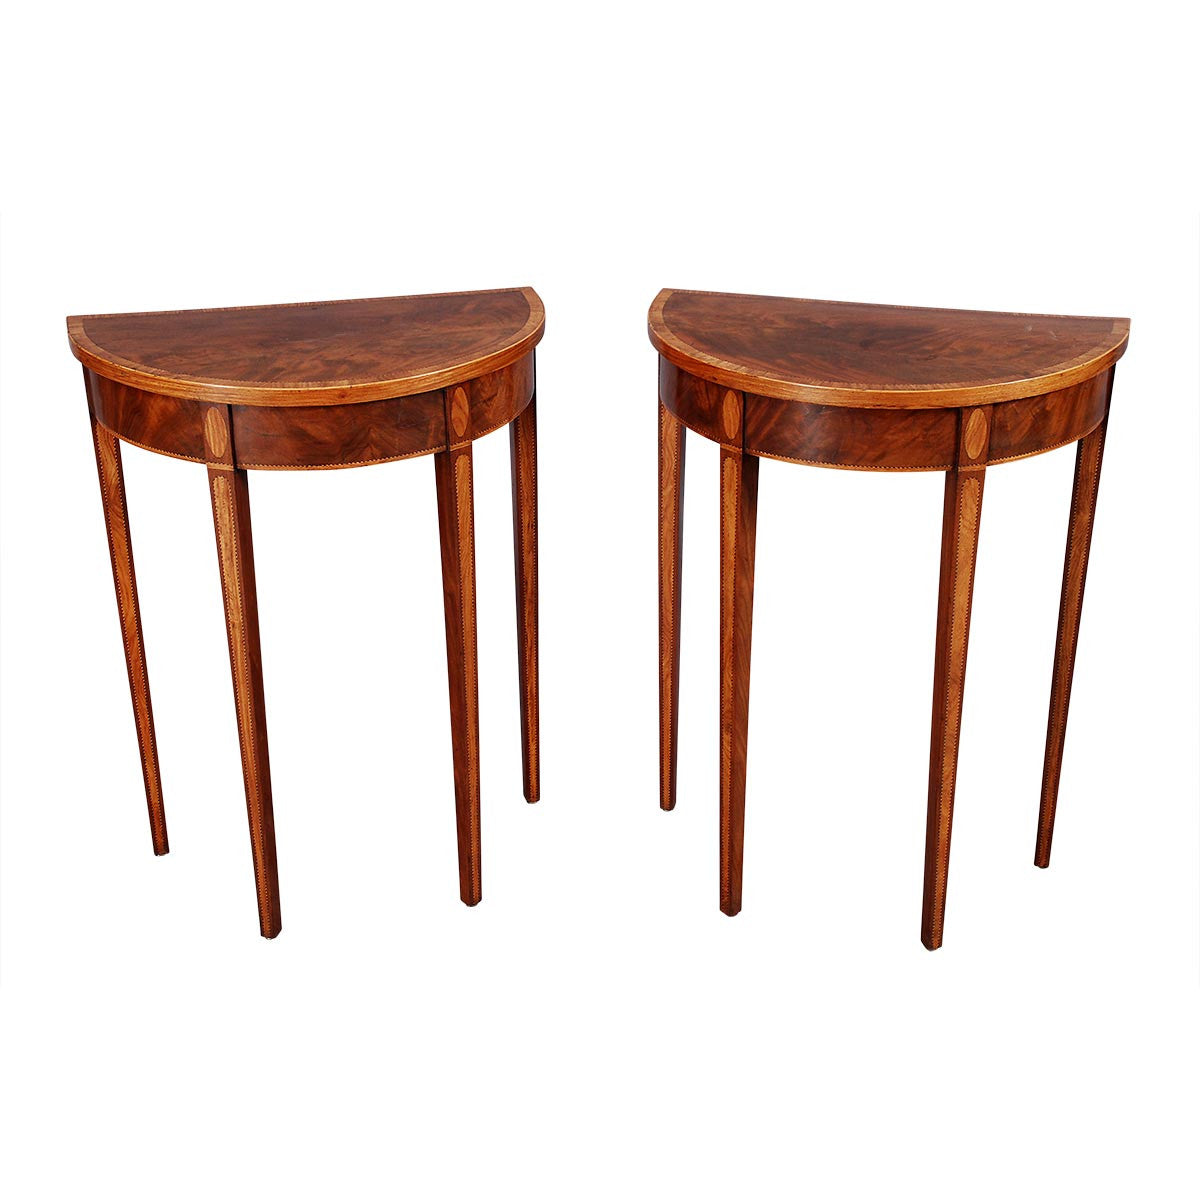 Pair Of Unusually Small Demilune Tables